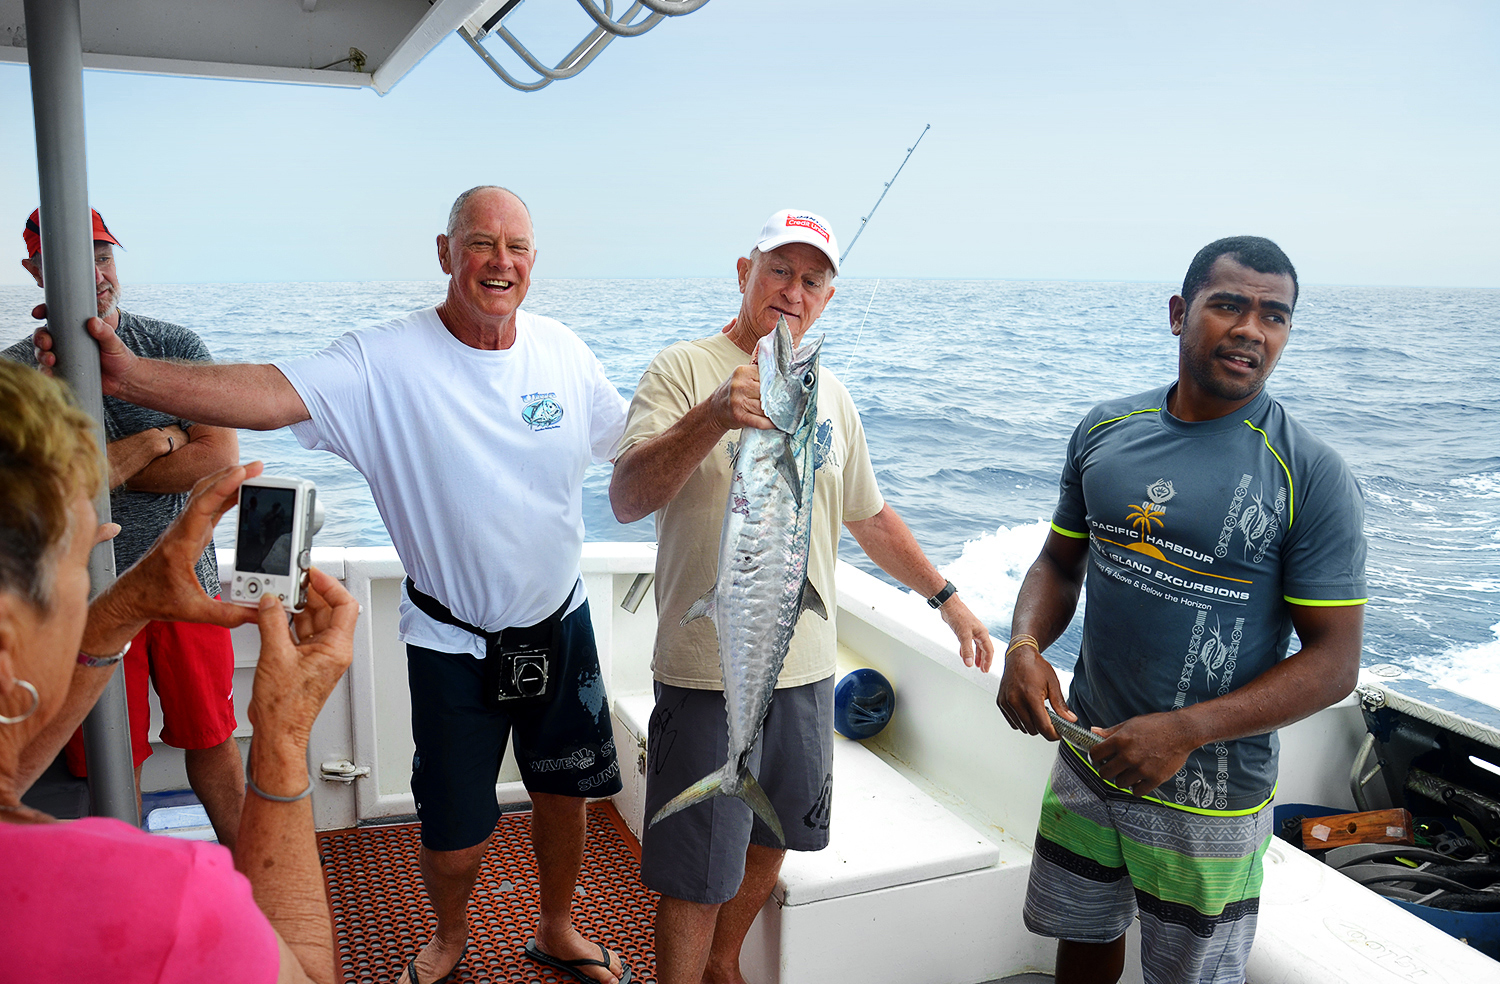 Fiji day trip, fishing, Spanish mackerel